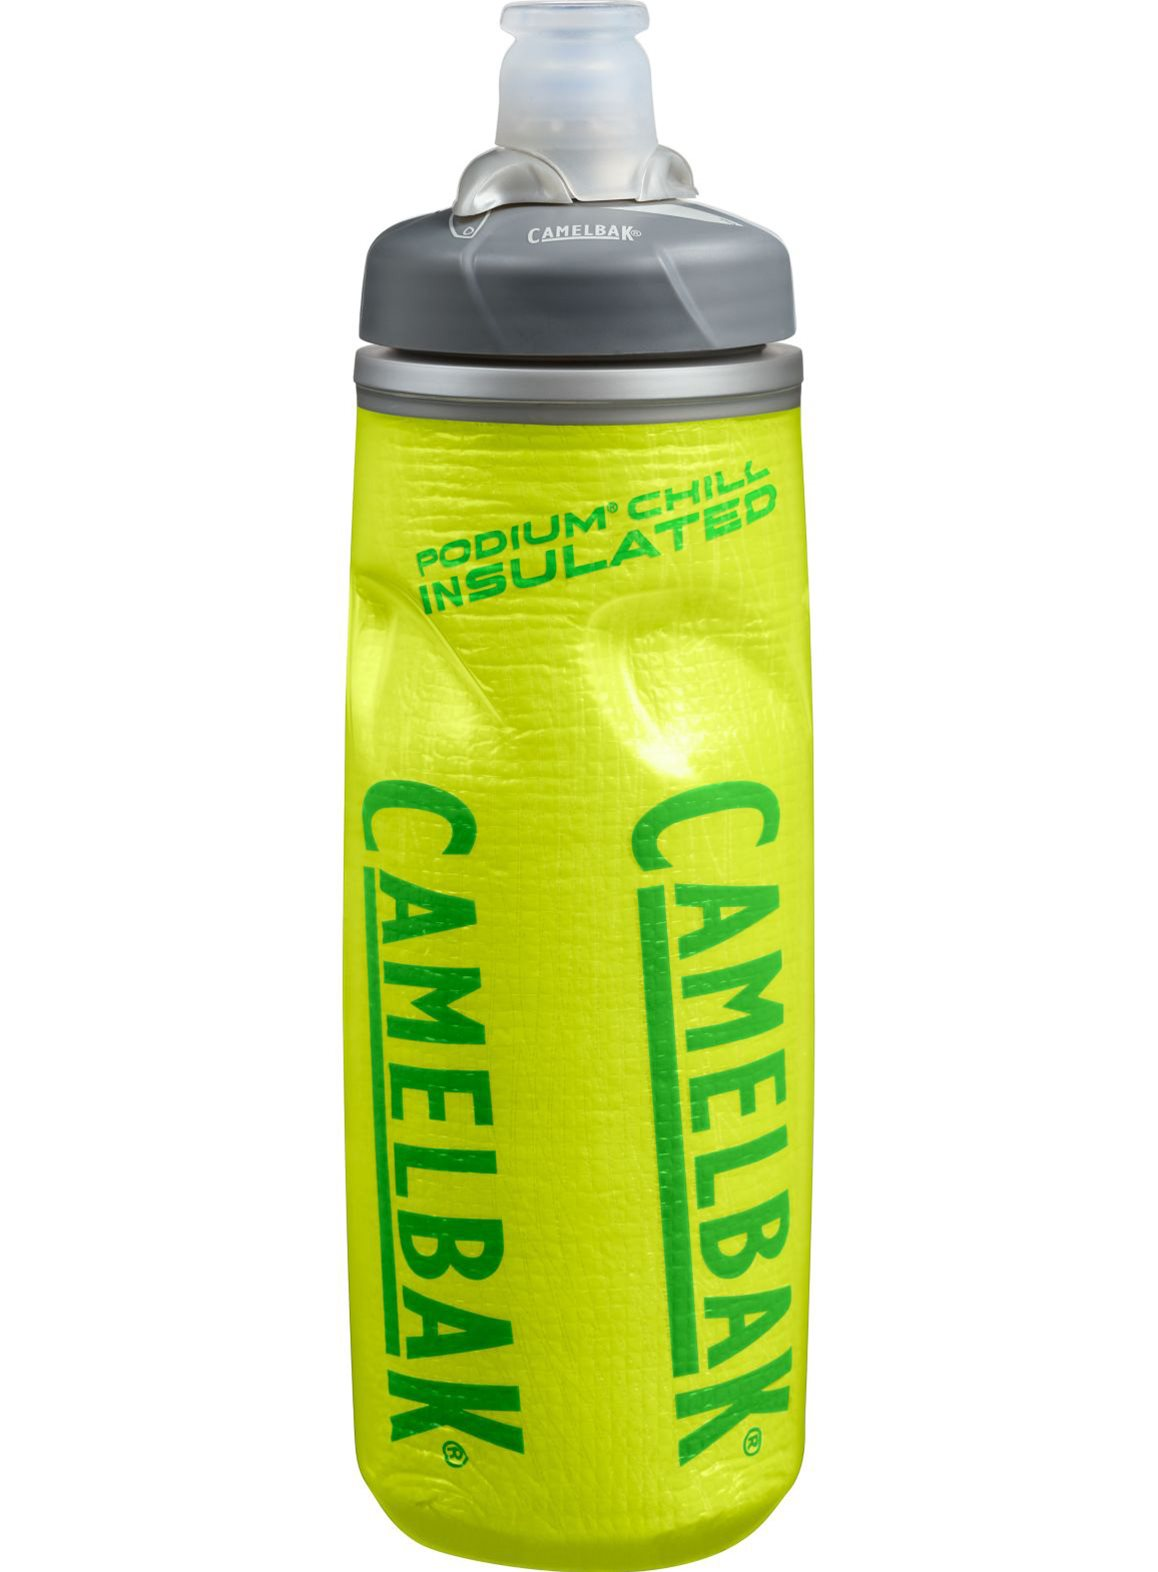 camelbak bidon isotherme podium chill 650ml jaune. Black Bedroom Furniture Sets. Home Design Ideas